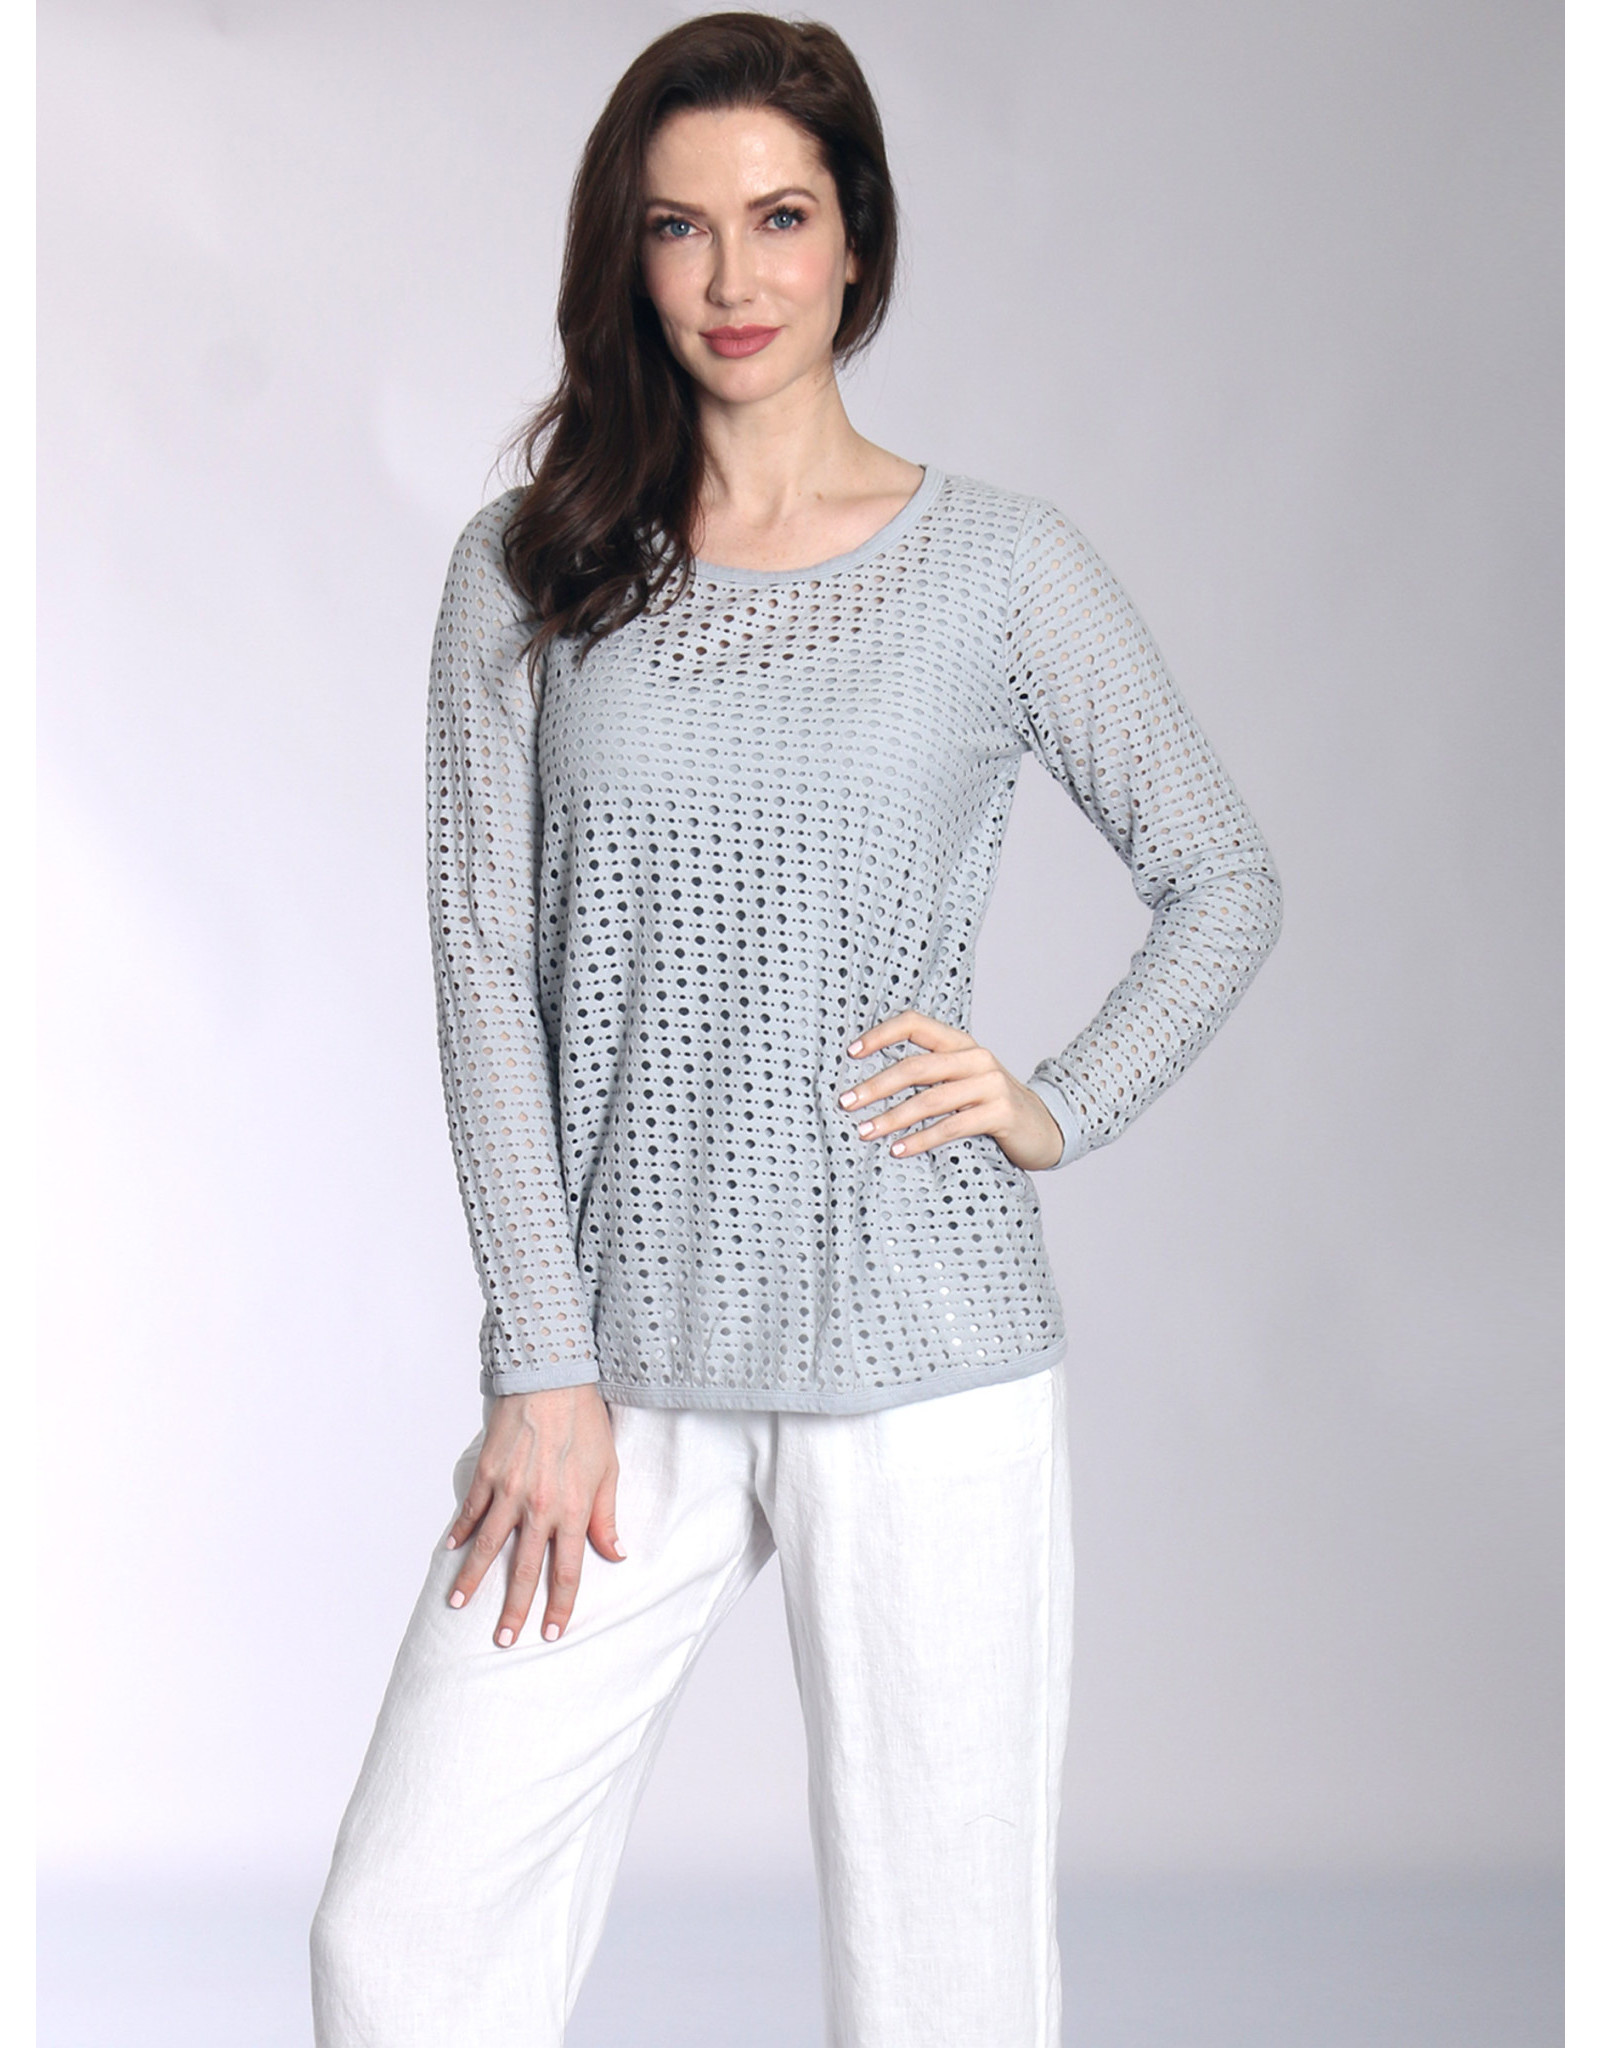 Fenini Lined Top